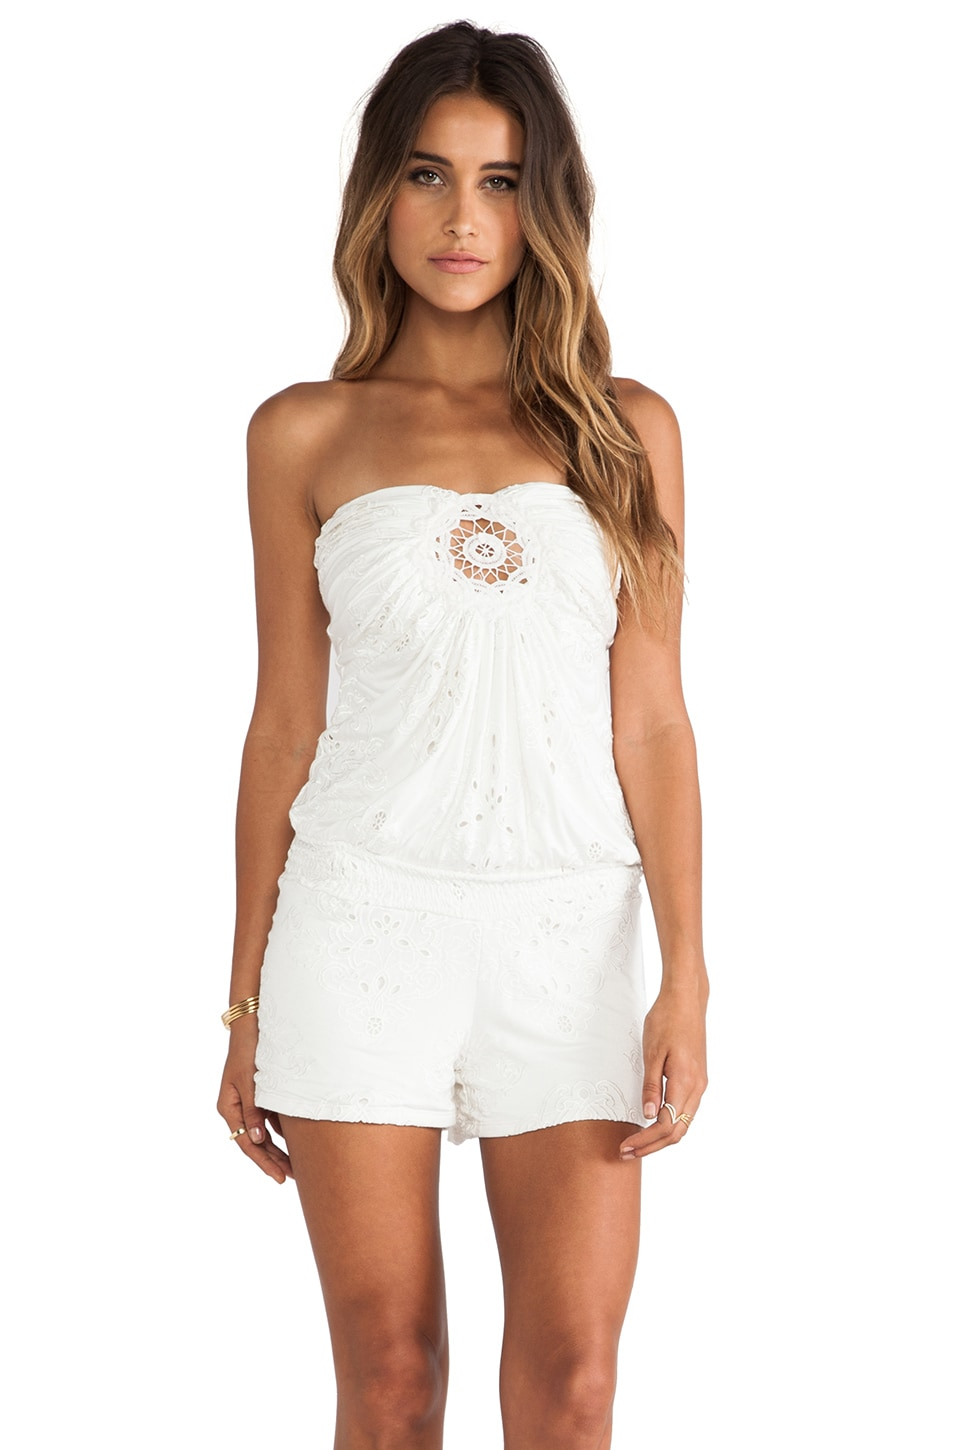 sky Neneca Romper in Bone and White